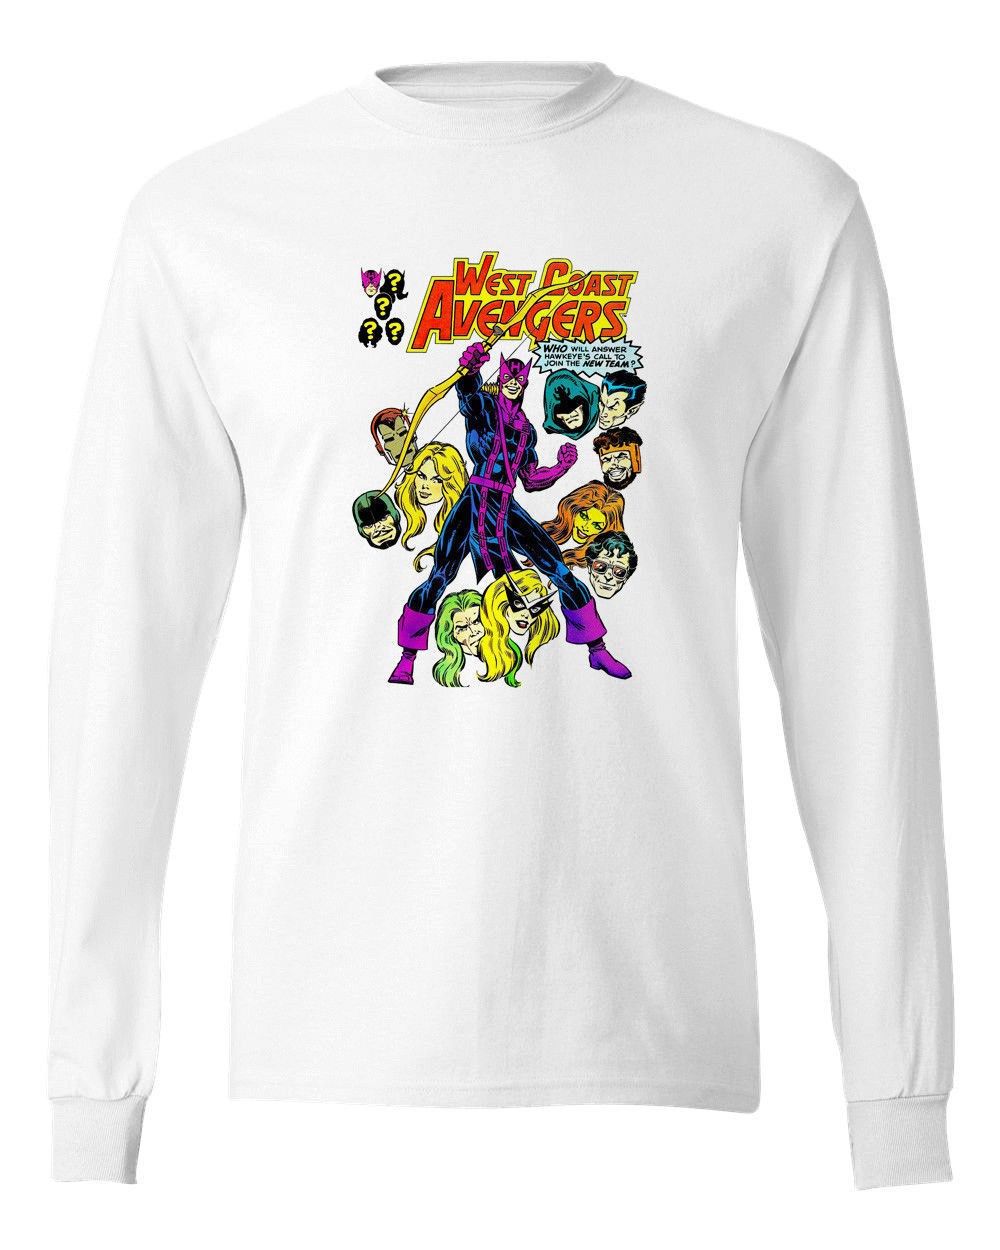 West coast avengers long sleeve t shirt vintage marvel for Retro long sleeve t shirts